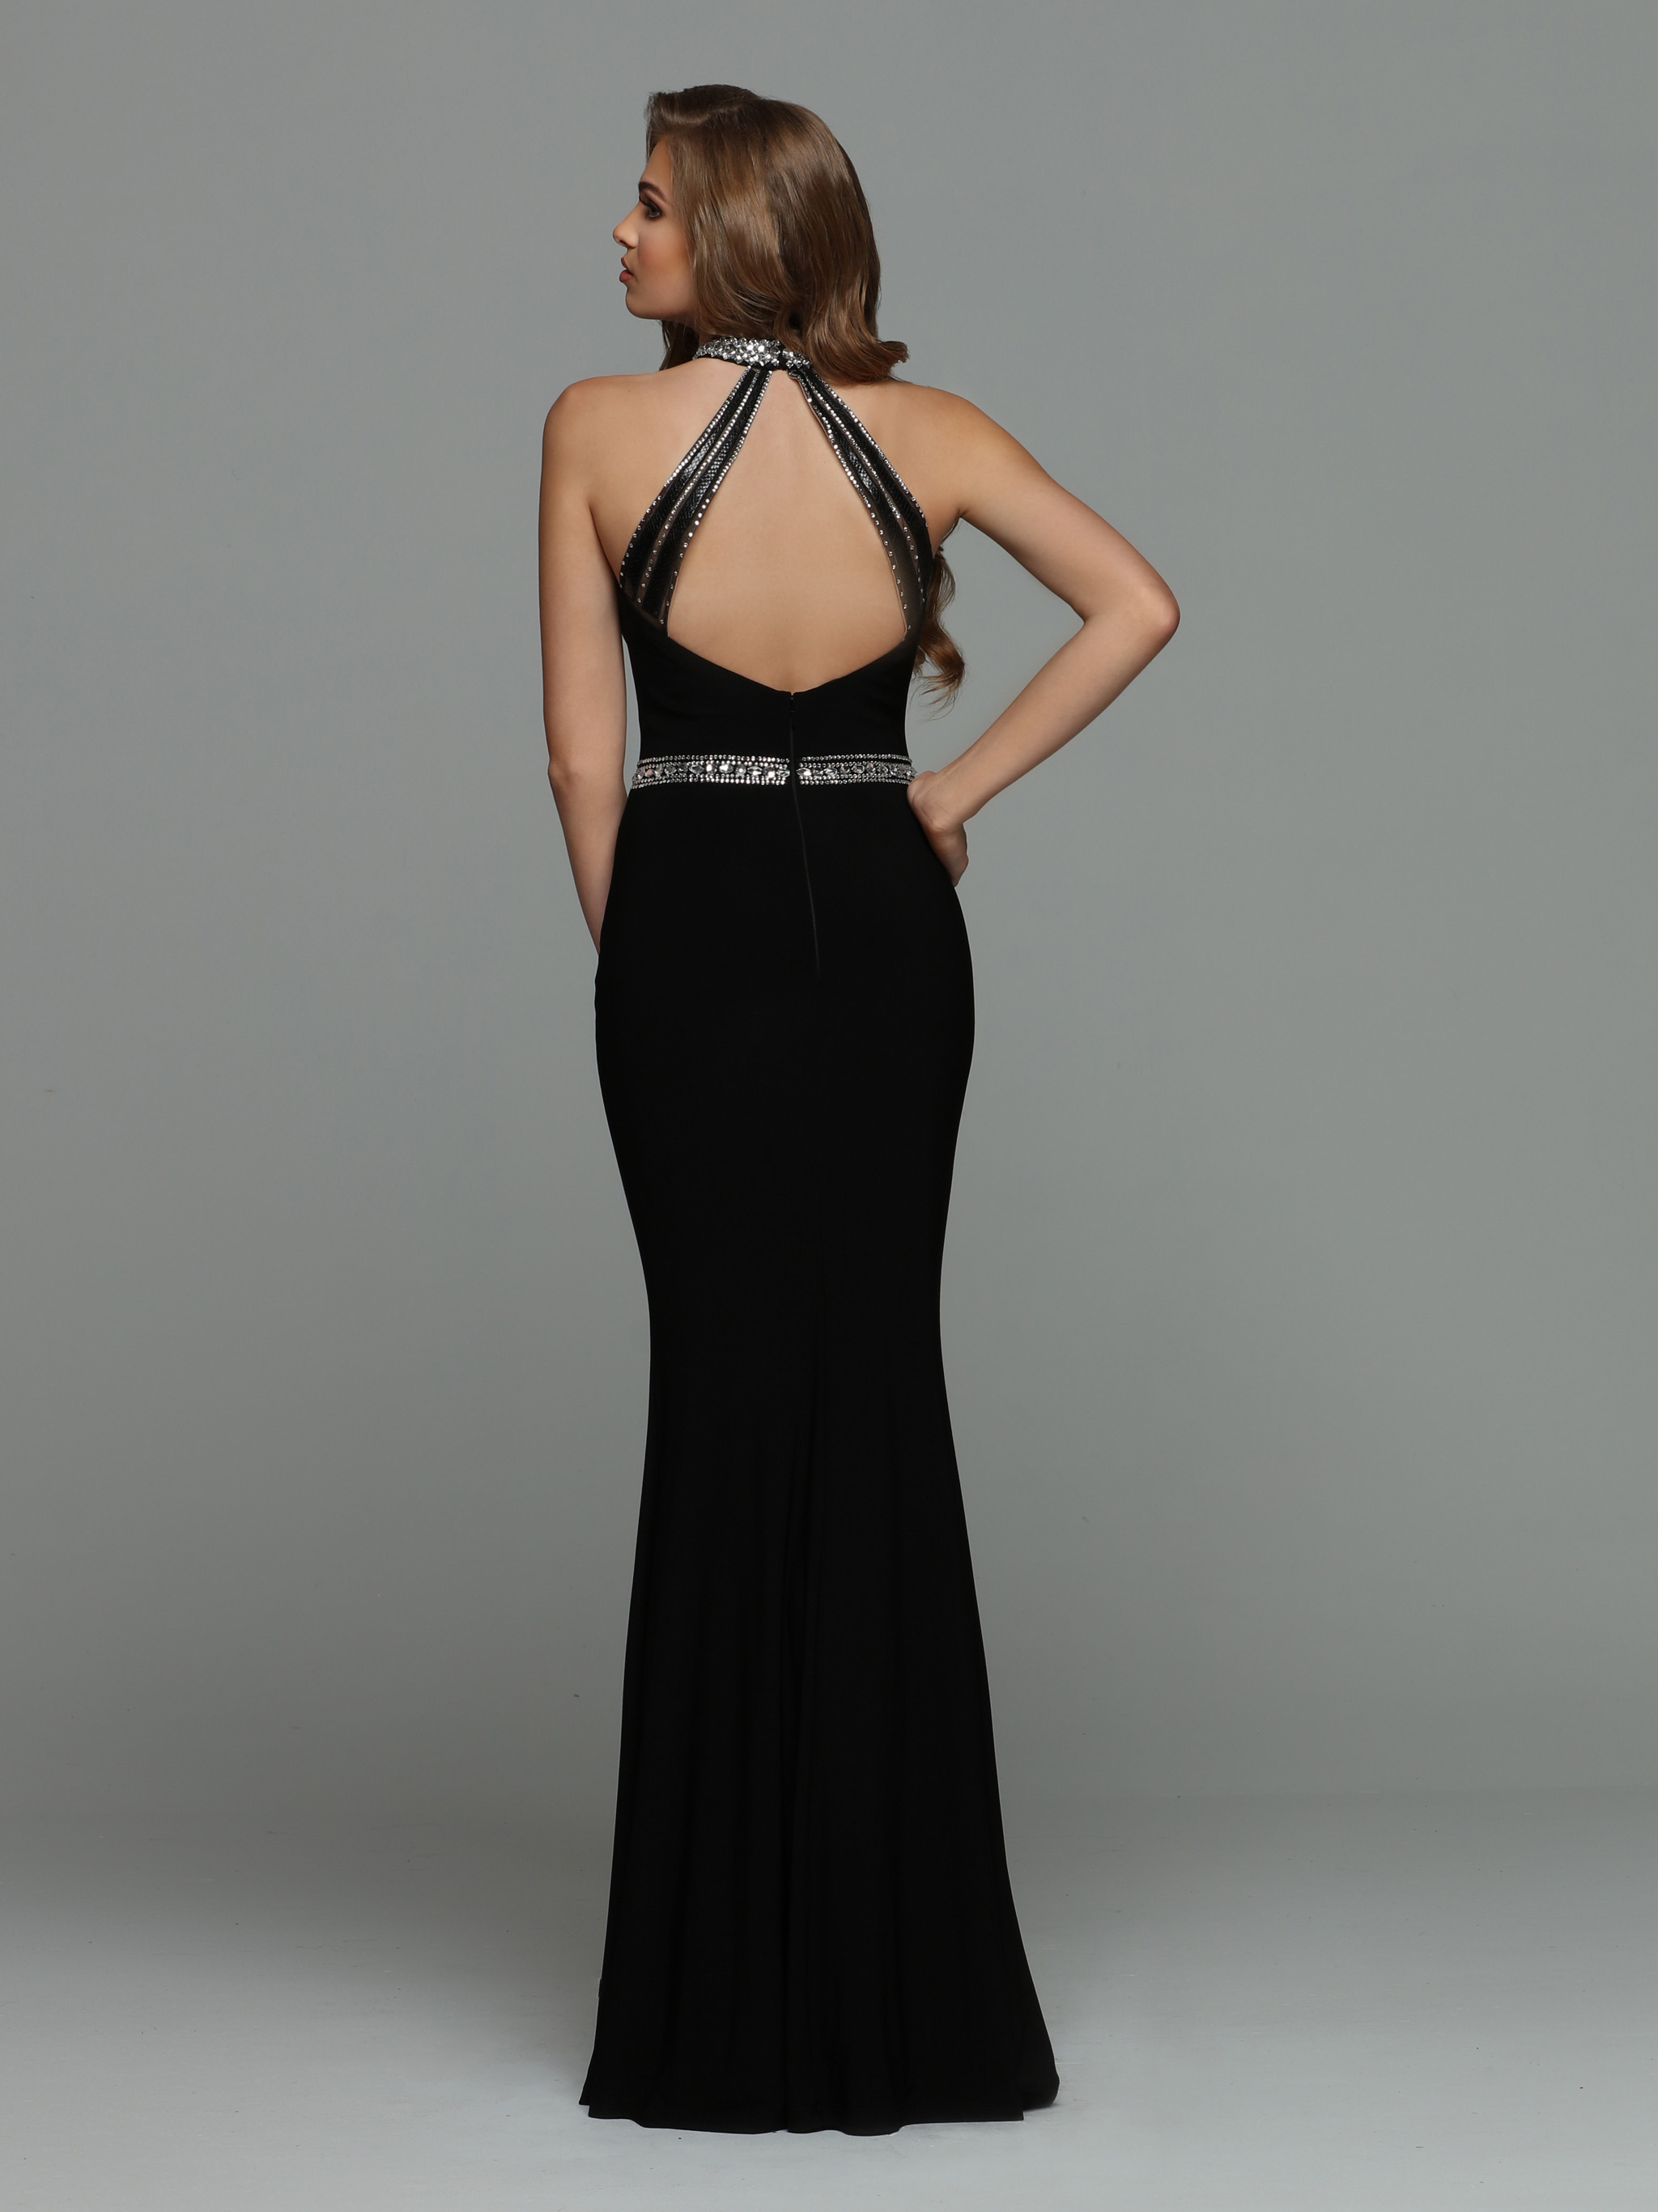 Image showing back view of style #71945